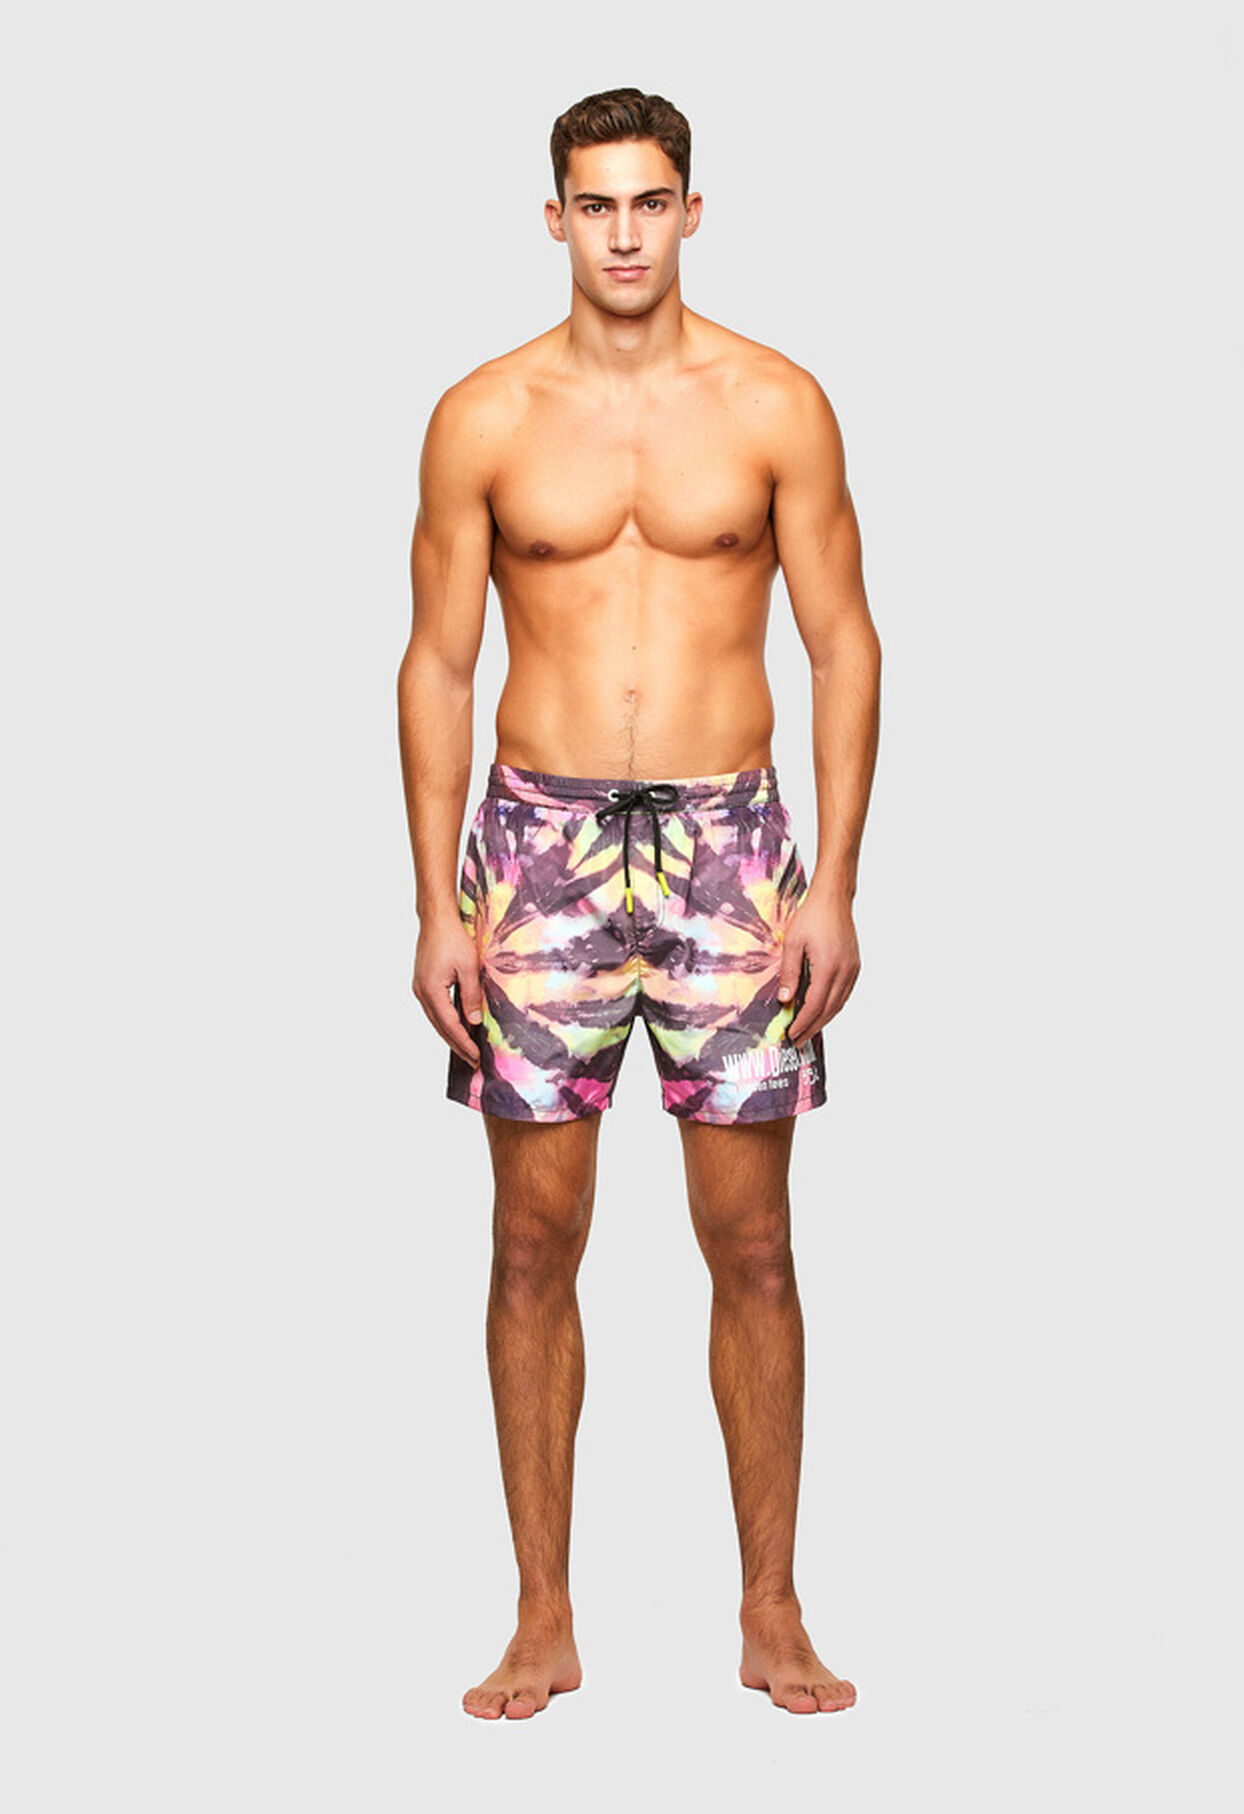 https://ro.diesel.com/dw/image/v2/BBLG_PRD/on/demandware.static/-/Library-Sites-DieselMFSharedLibrary/default/dw34758e8d/CATEGORYOV/2X2_BEACHWEAR_B,BX-WAVE-2017_00SV9U_0JBAY_E0213_F.jpg?sw=1244&sh=1814